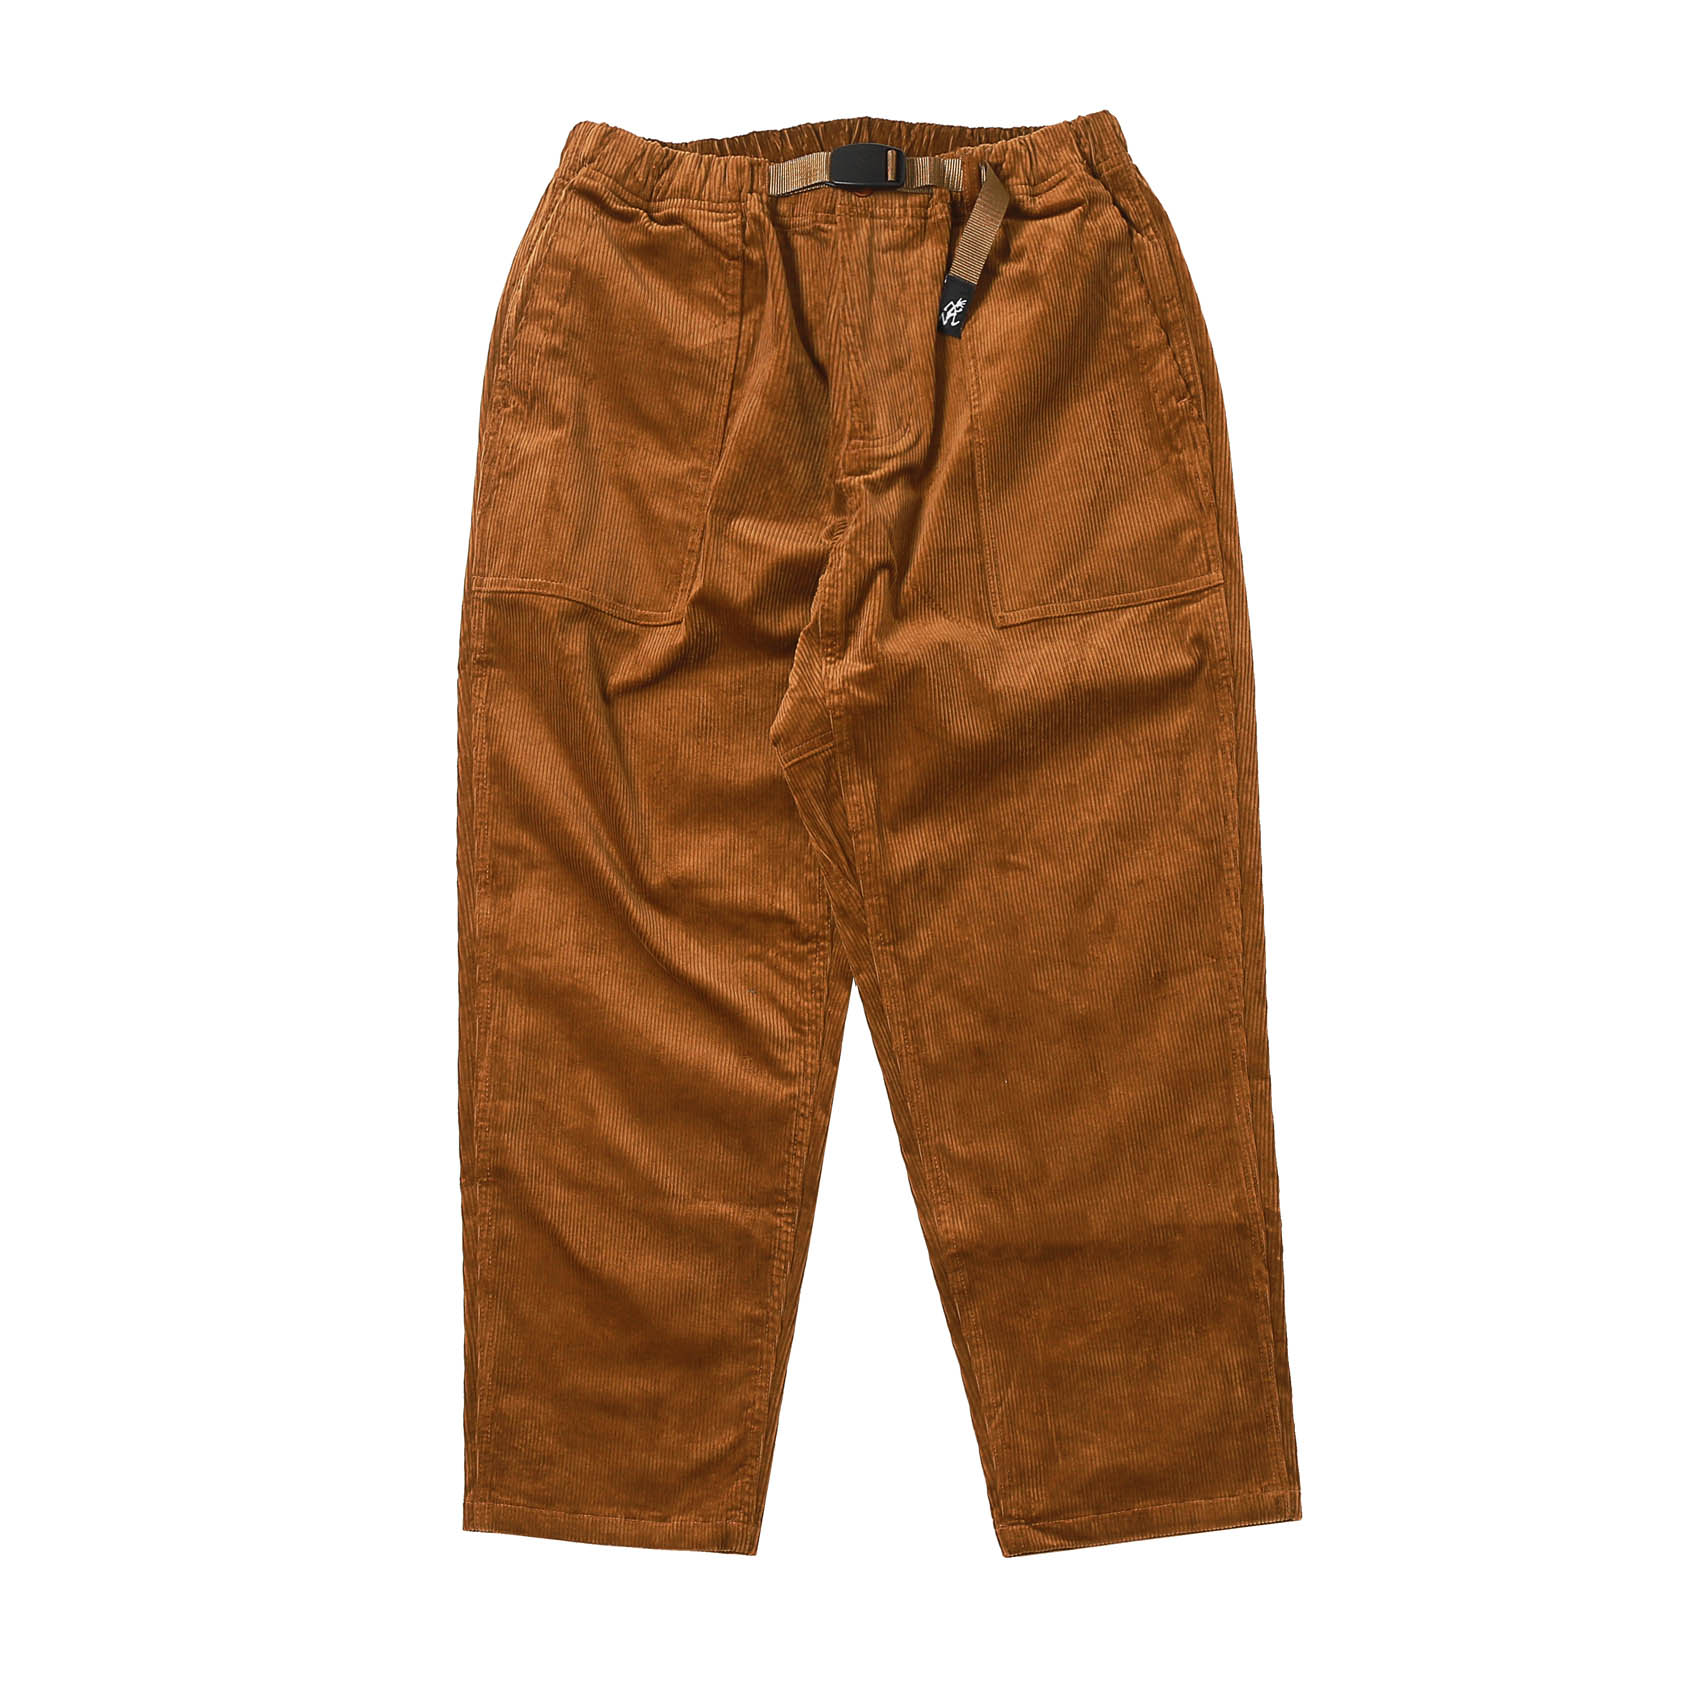 CORDUROY LOOSE TAPERED PANTS - CAMEL